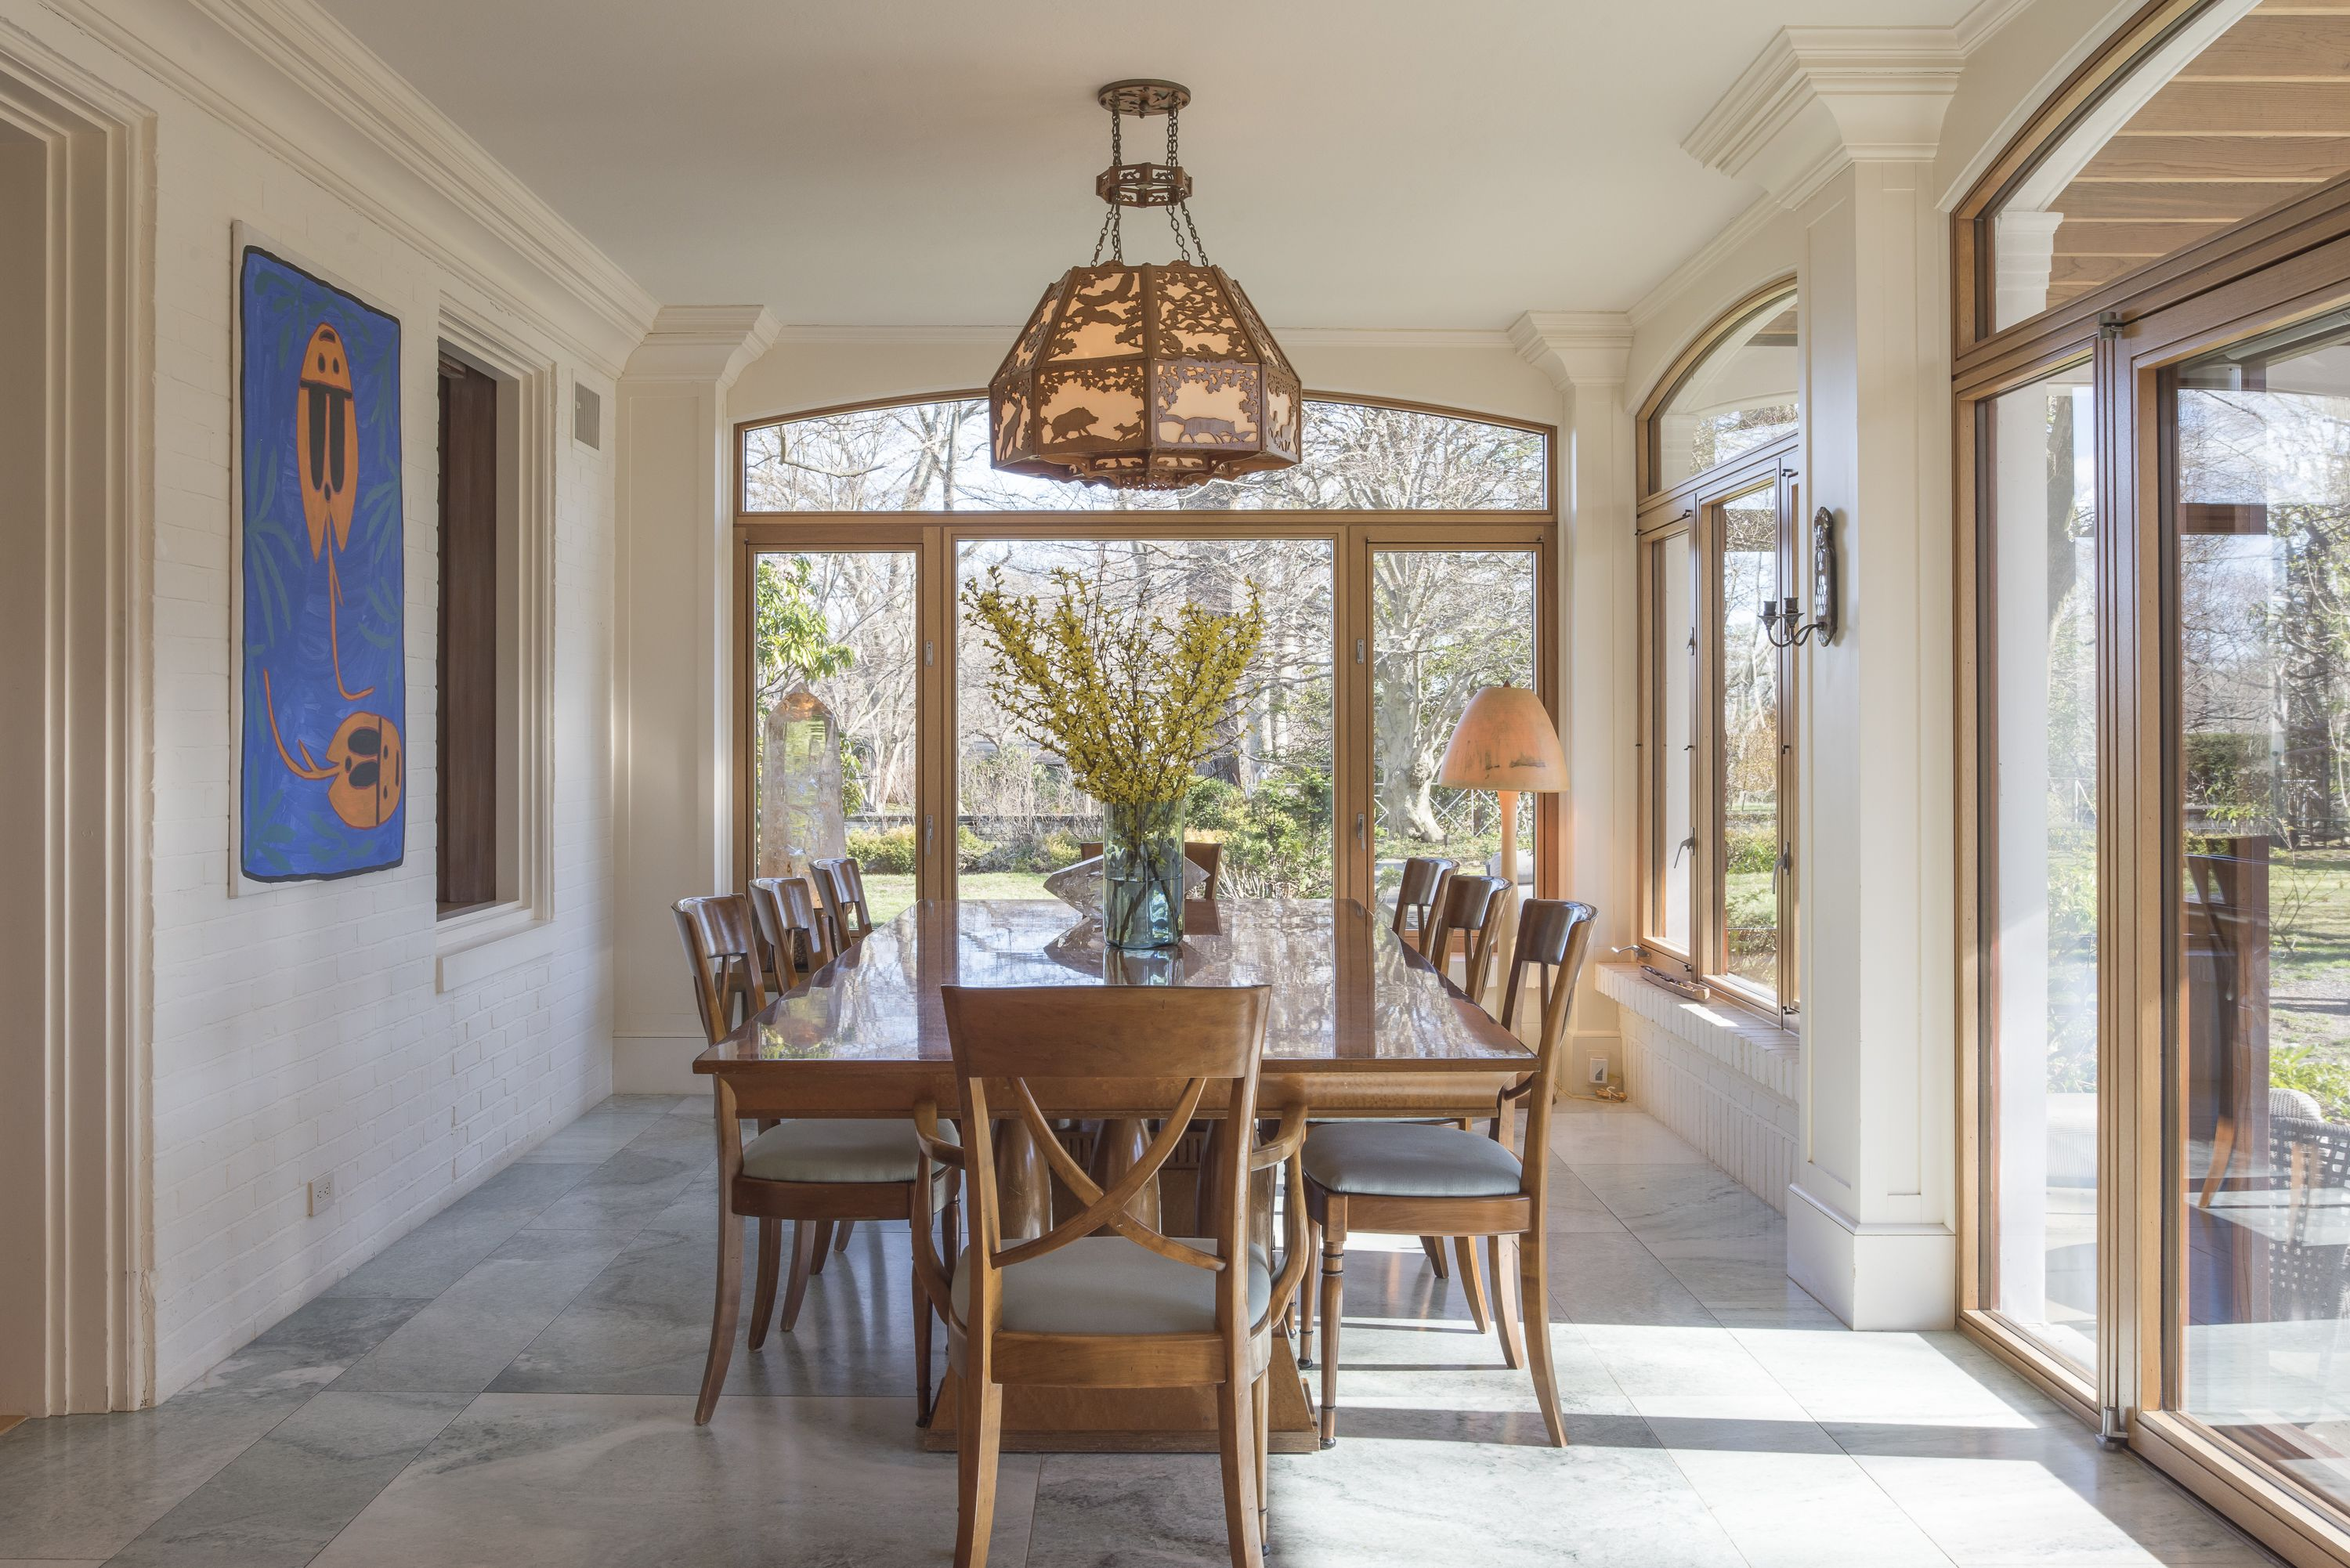 Plus, there's a light-filled dining room for more formal occasions.